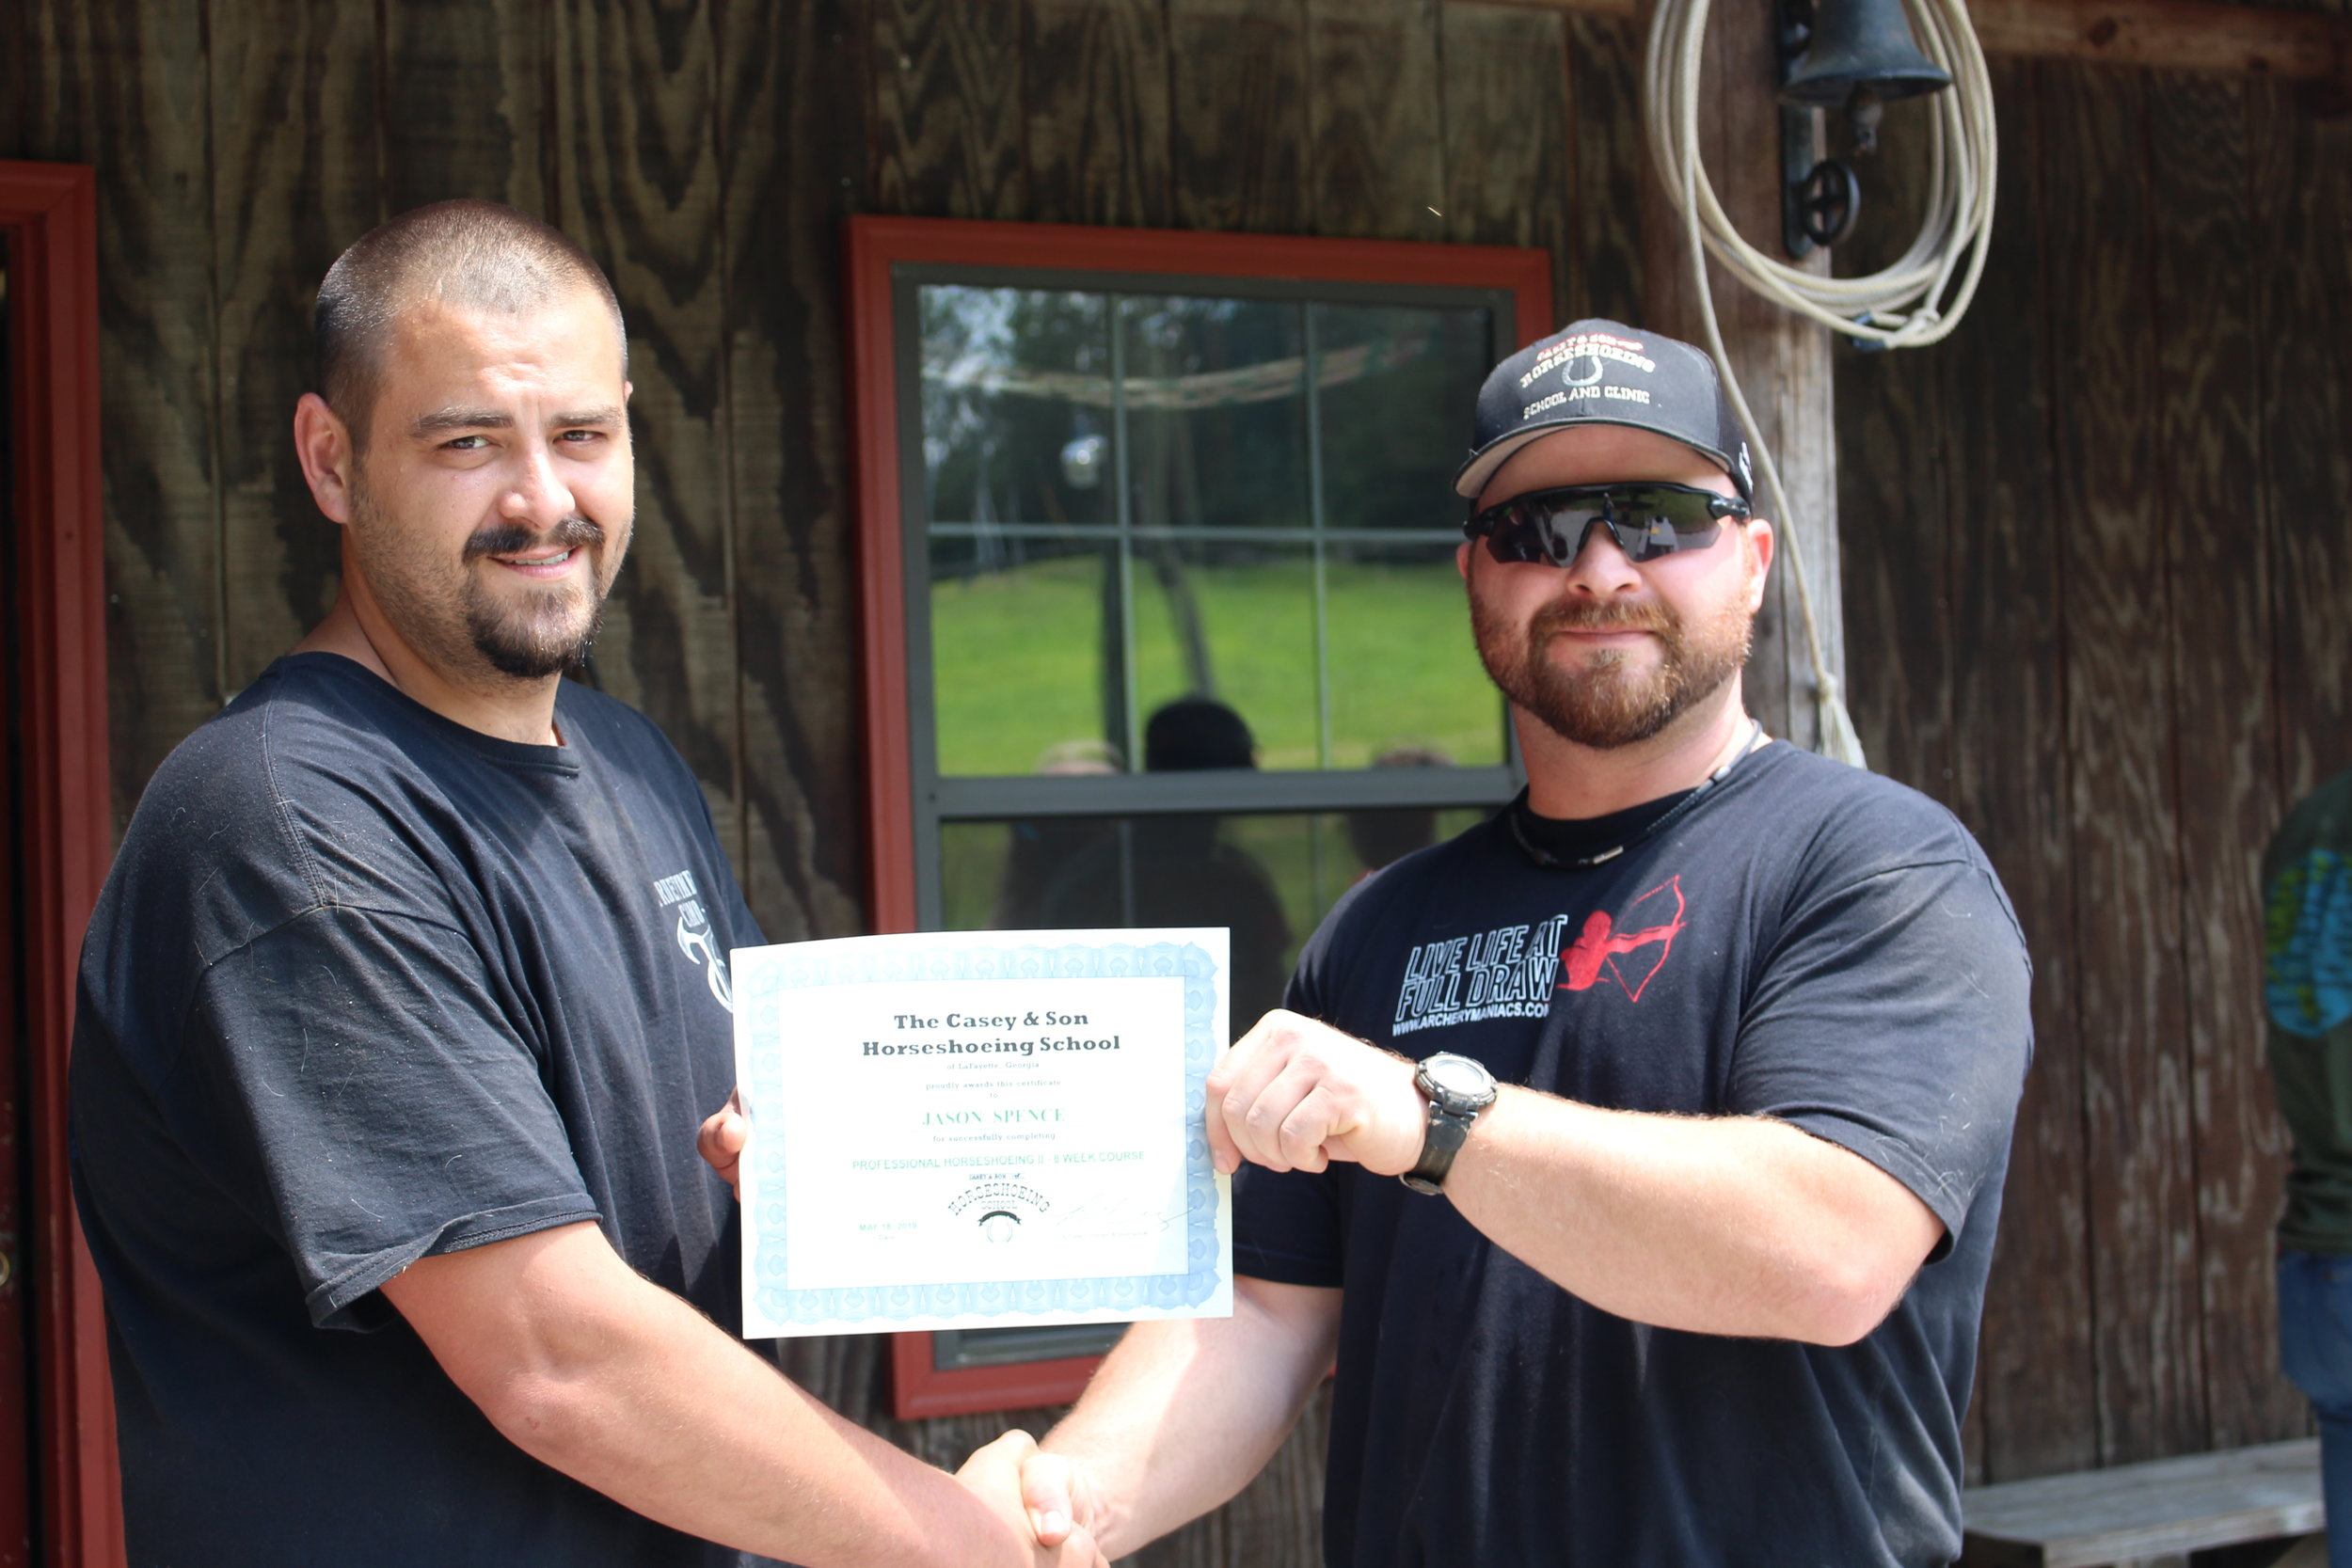 Jason Spence of Beckley WV, Graduate Farrier of Casey Horseshoeing School with link Casey, Owner, Instructor. Congratulations to a real hard worker changing careers from coal mining to Independent self employment and certified Farrier!